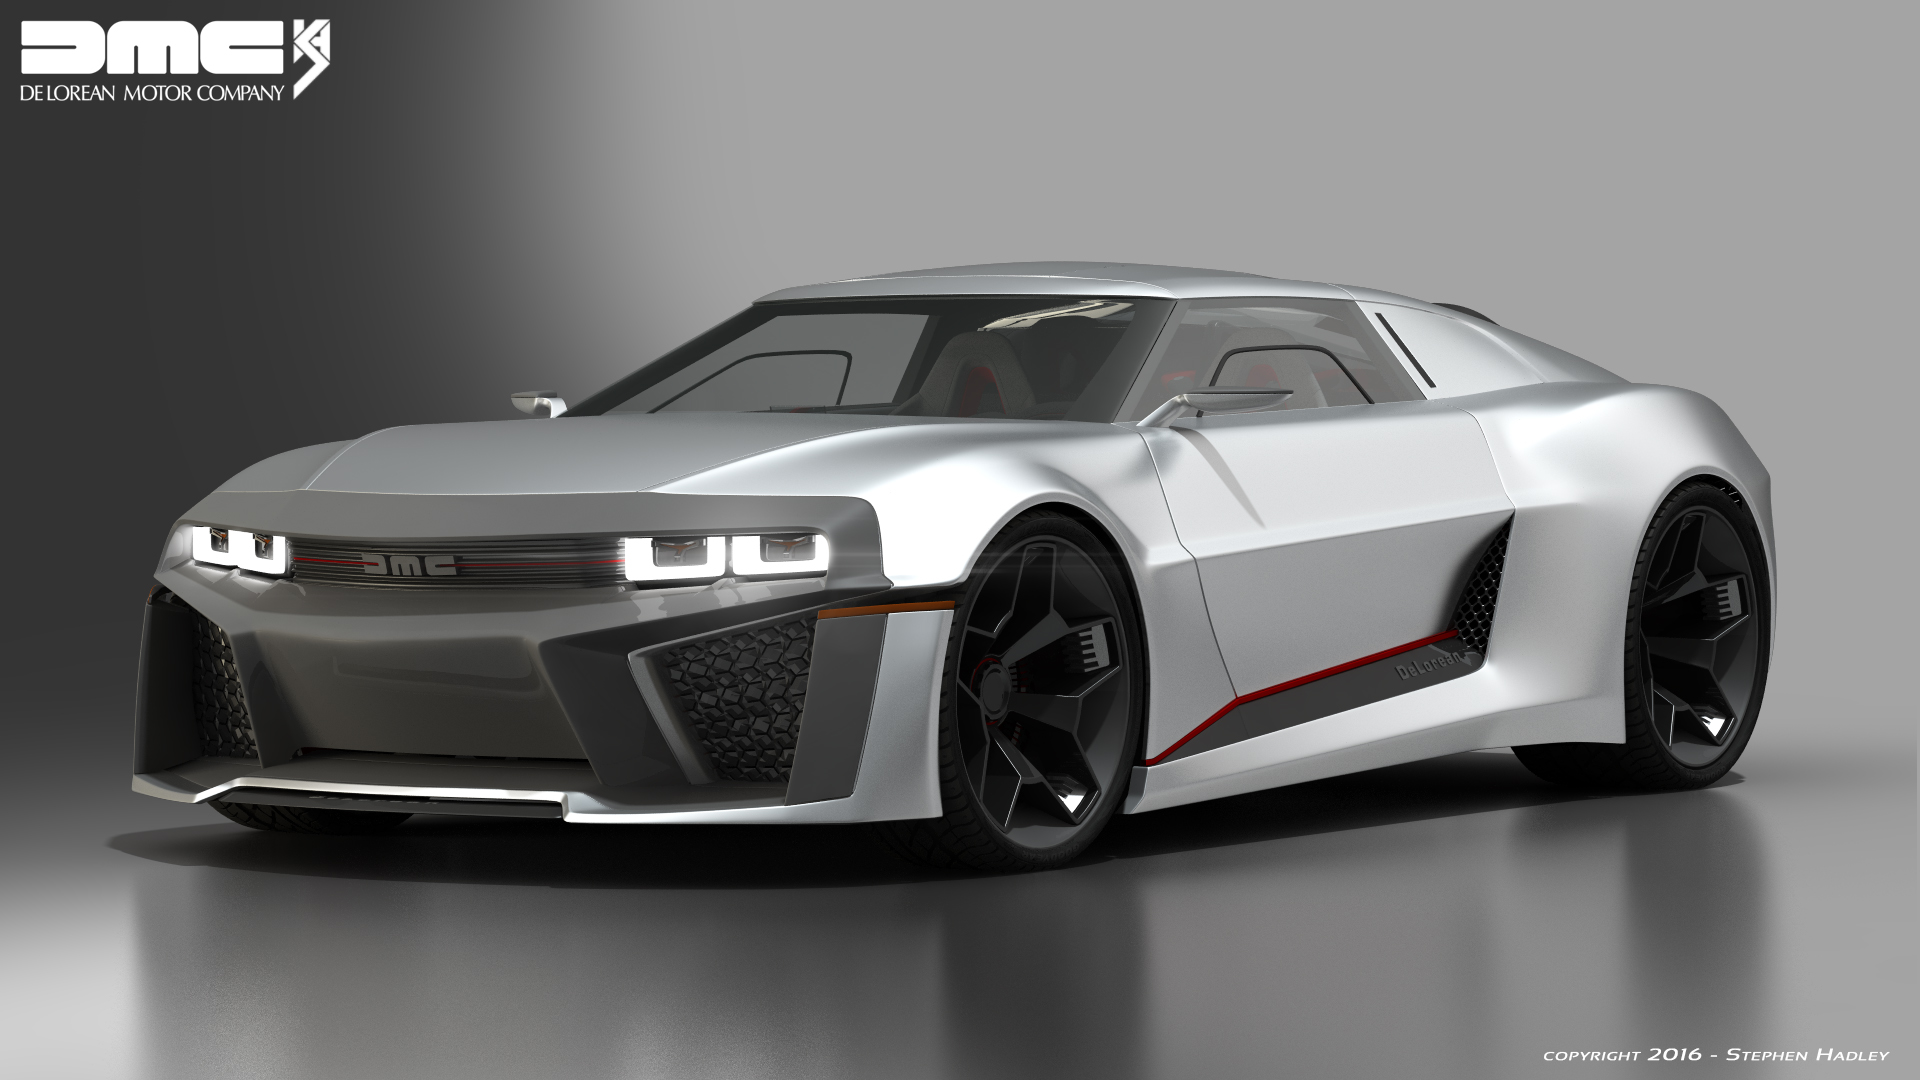 2017 DMC Delorean concept 3 by Sphinx1